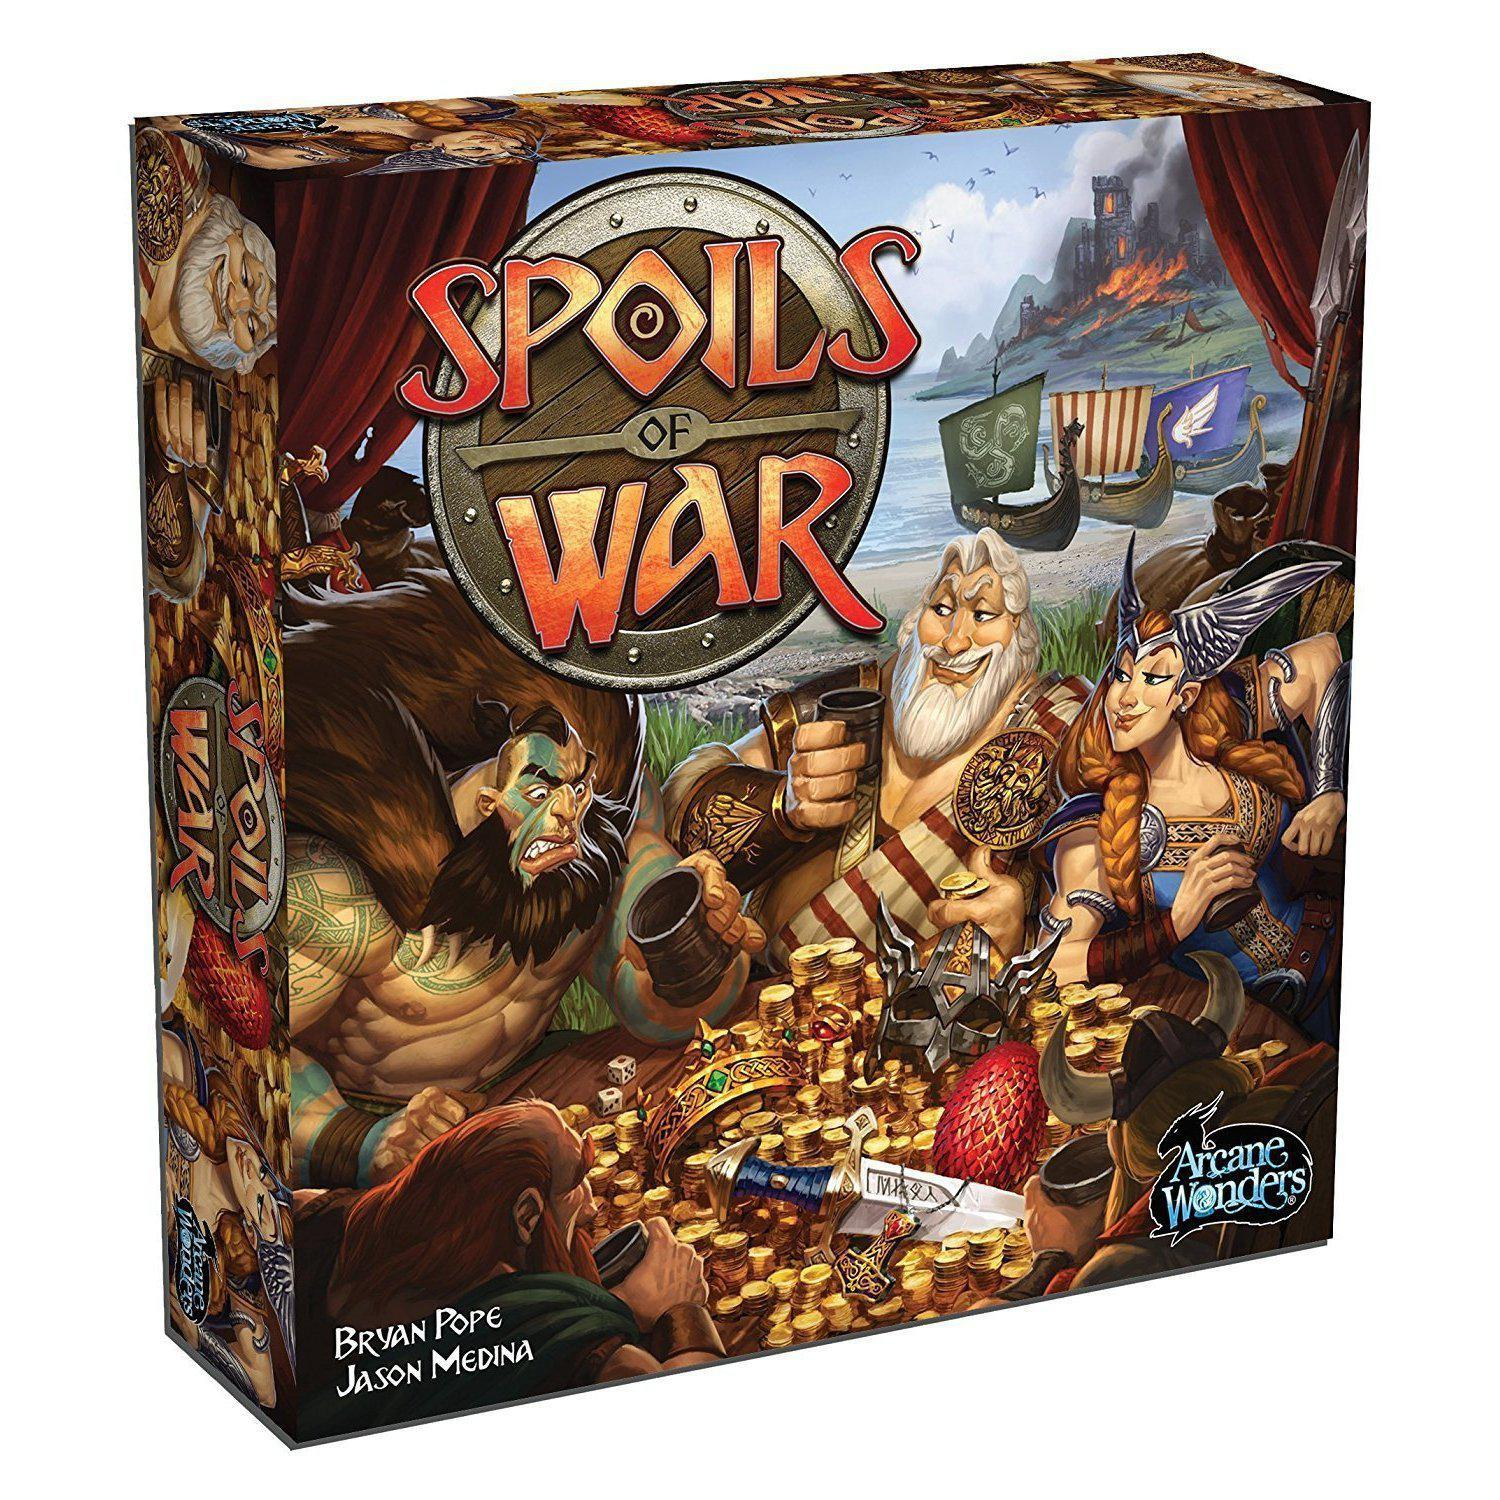 Spoils of War Board Game - Cubox Australia